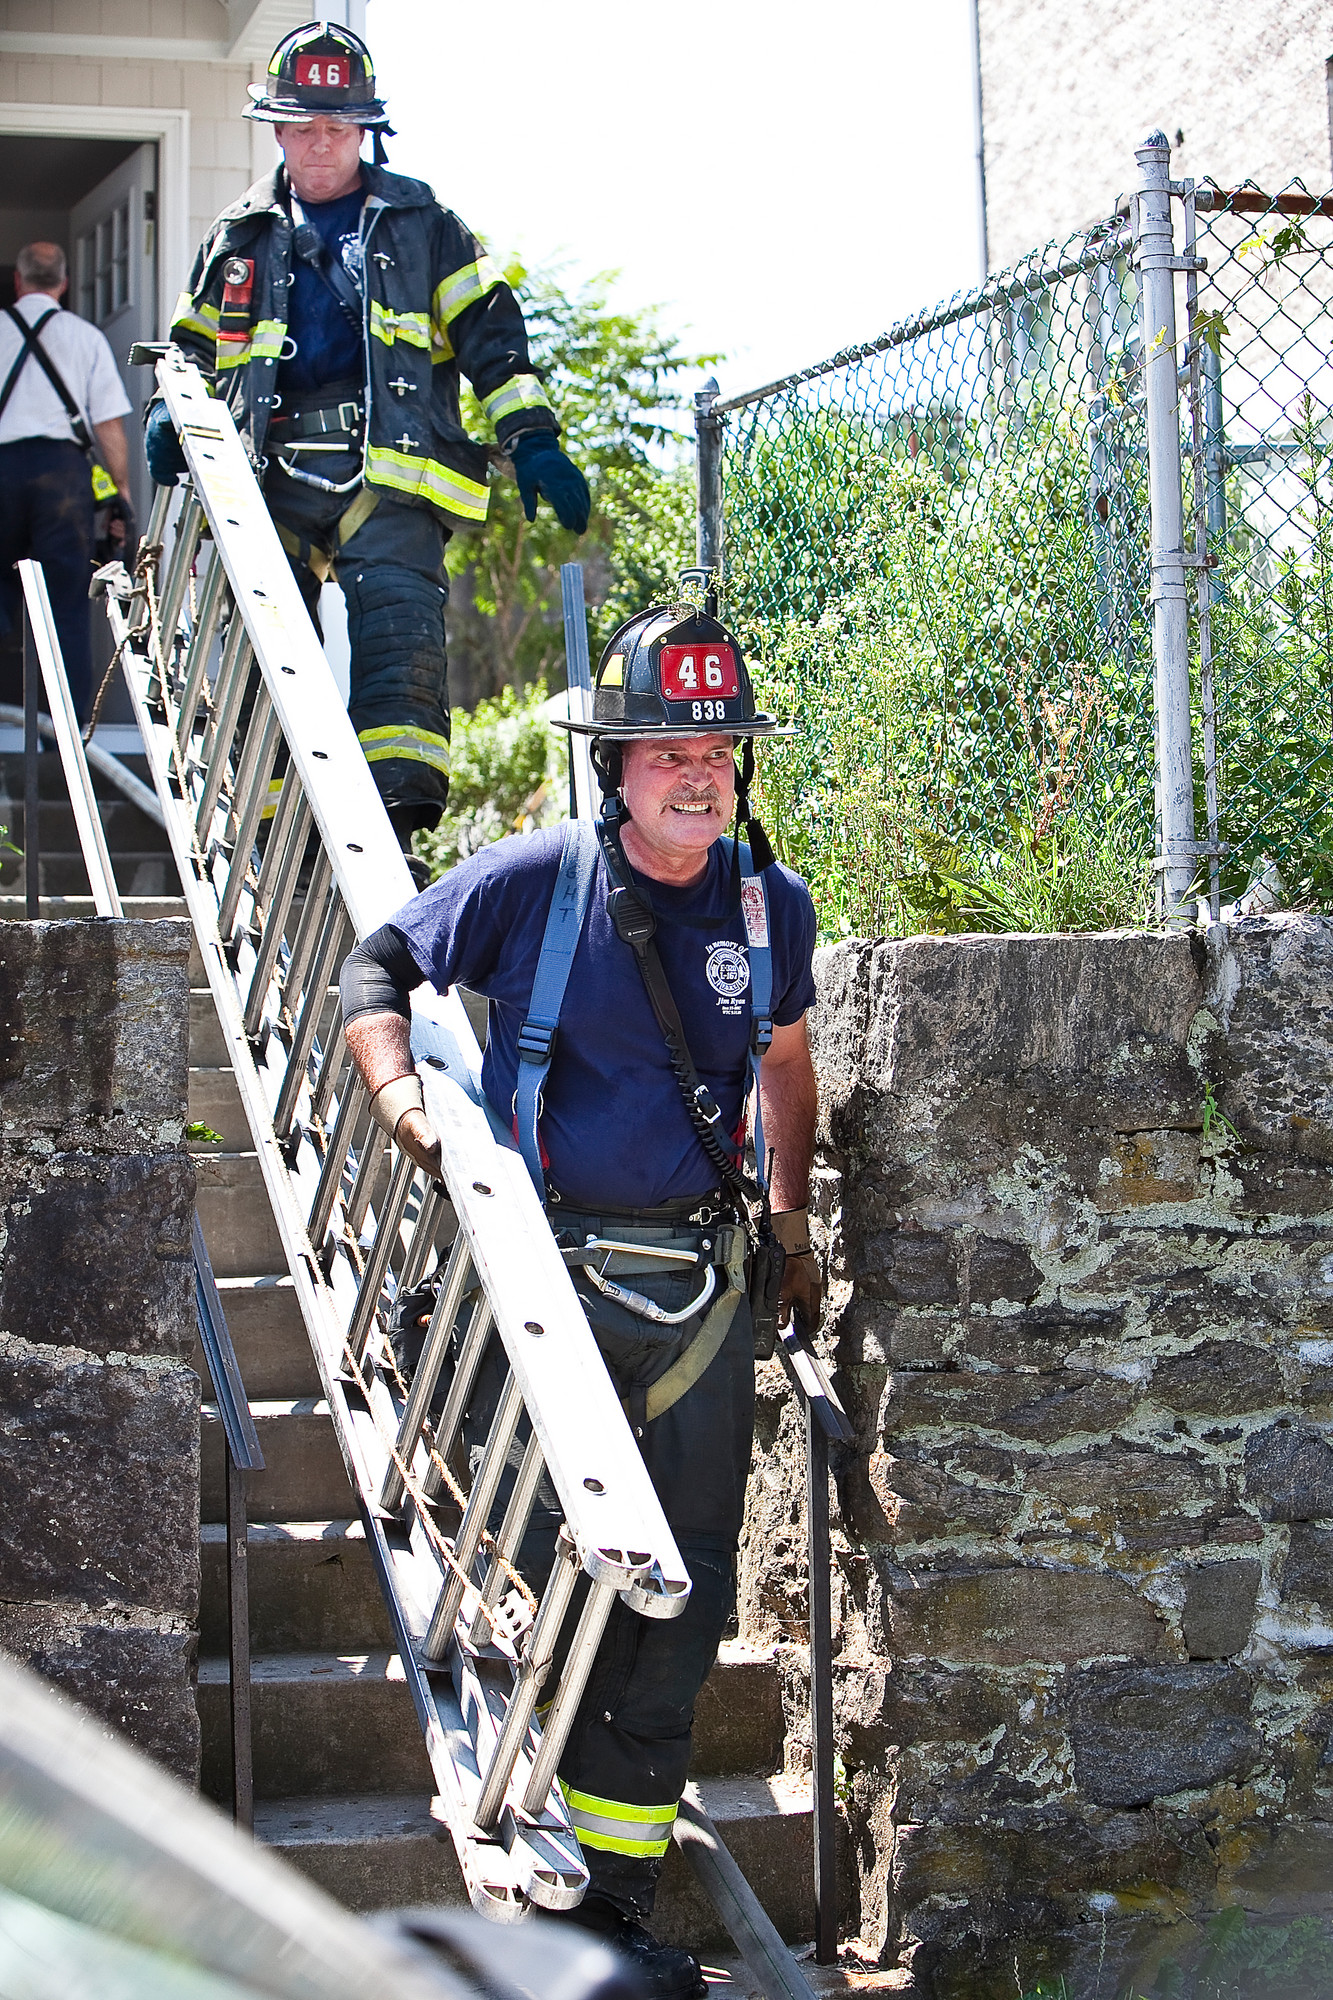 FIRE OFFICIALS respond on July 17 to a fire smoldering at 436 W. 259th St., which is being remodeled. More than 20 firefighters put out the flames in under an hour. FDNY officials are still investigating what sparked the fire.